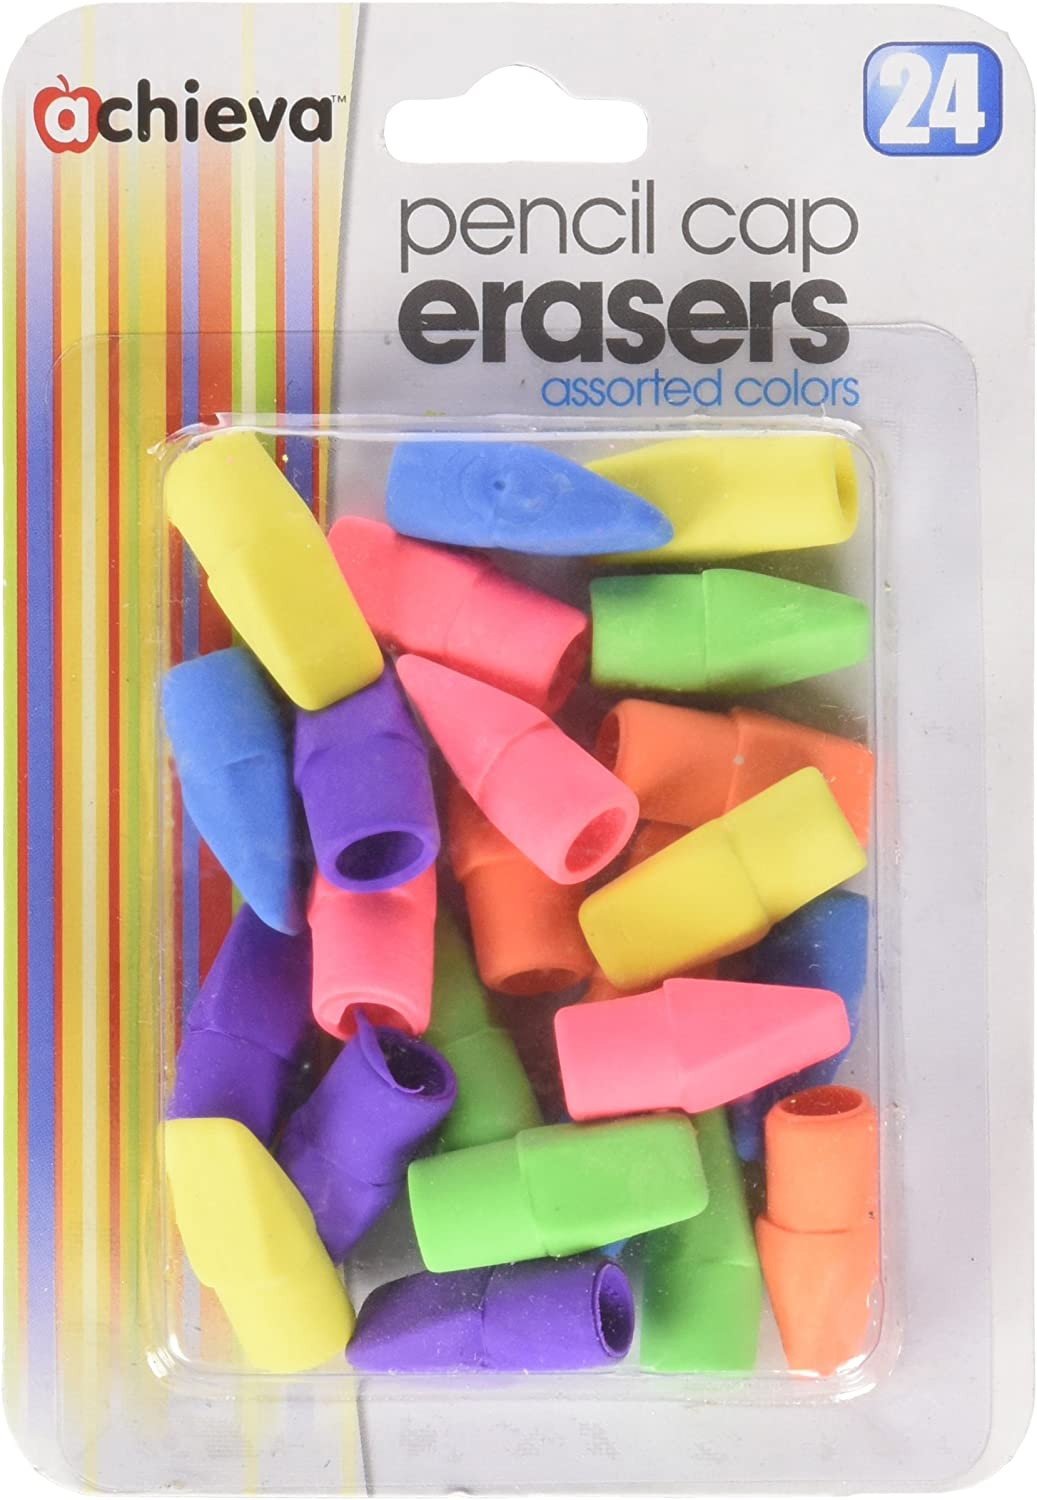 Officemate Fashion OIC Achieva Pencil Eraser Caps pack Assorte a High quality 24 in